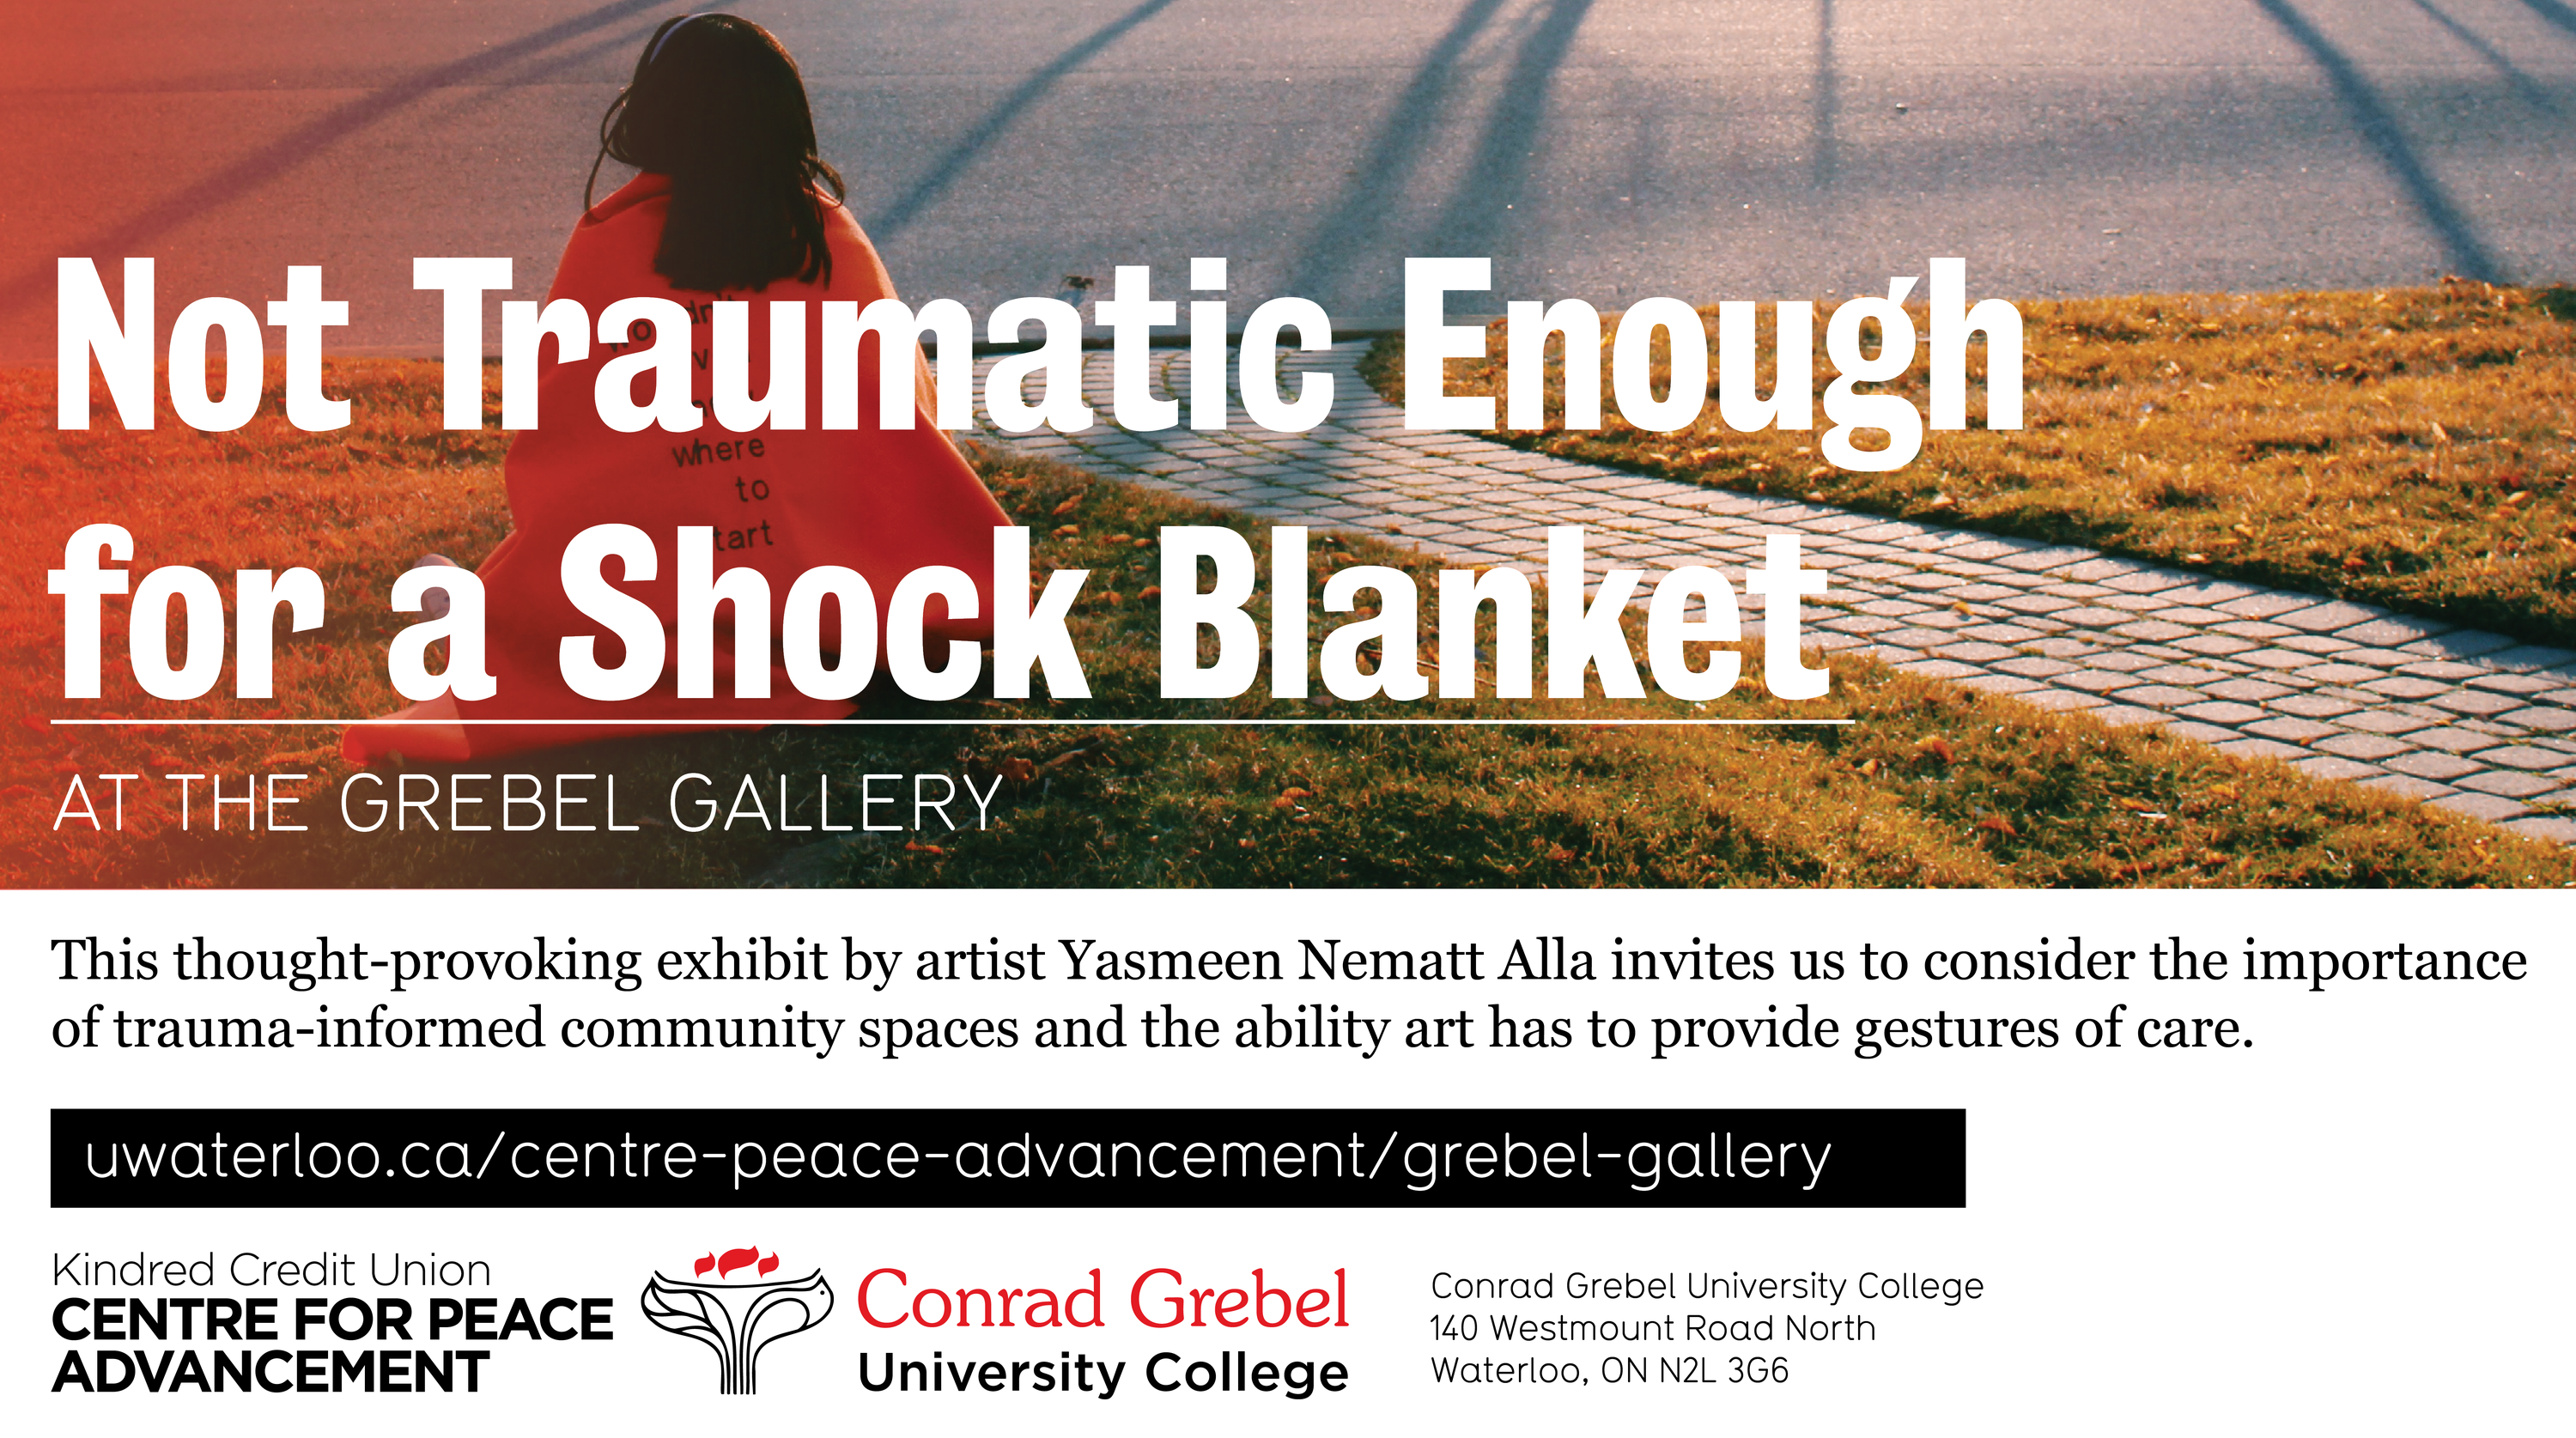 Grebel Gallery poster with photo of person with shock blanket and the exhibit title